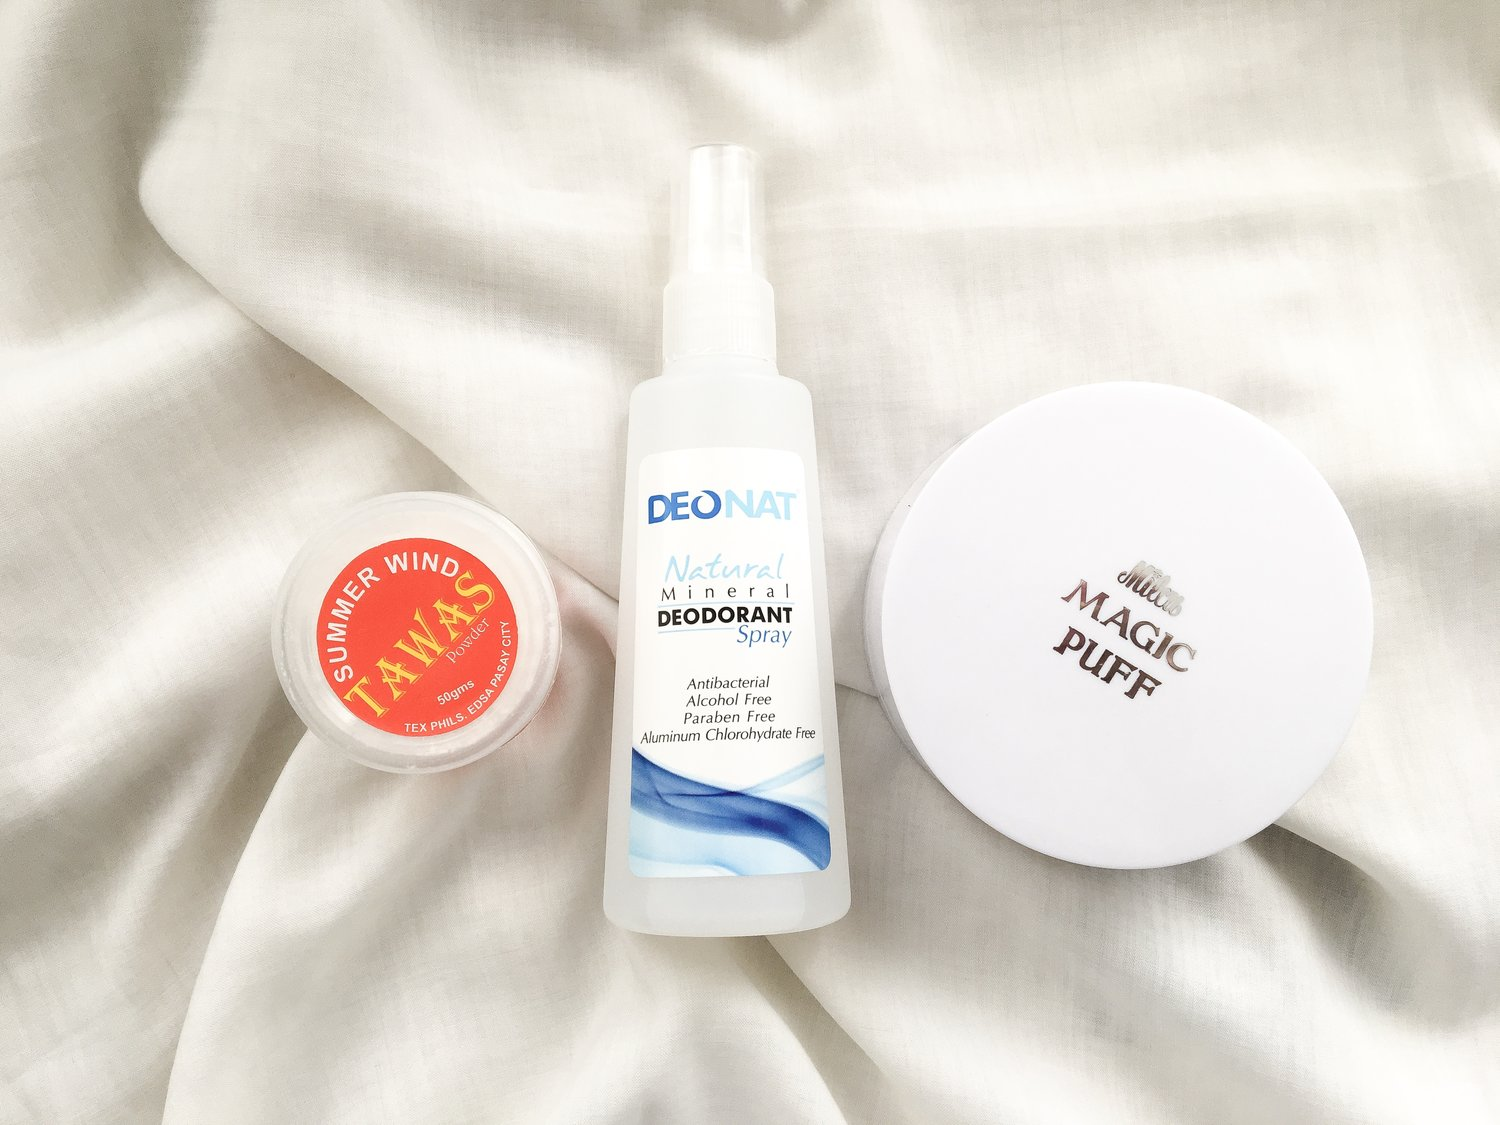 The Tawas Test: We compare three popular anti-sweat products